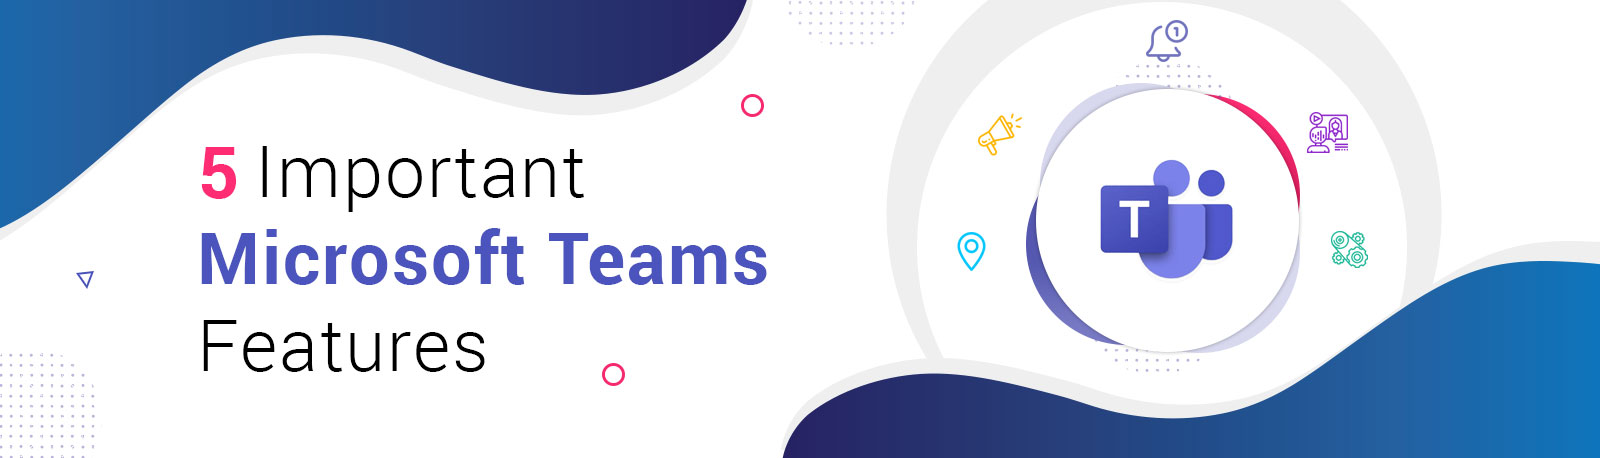 Five Important Microsoft Teams Features